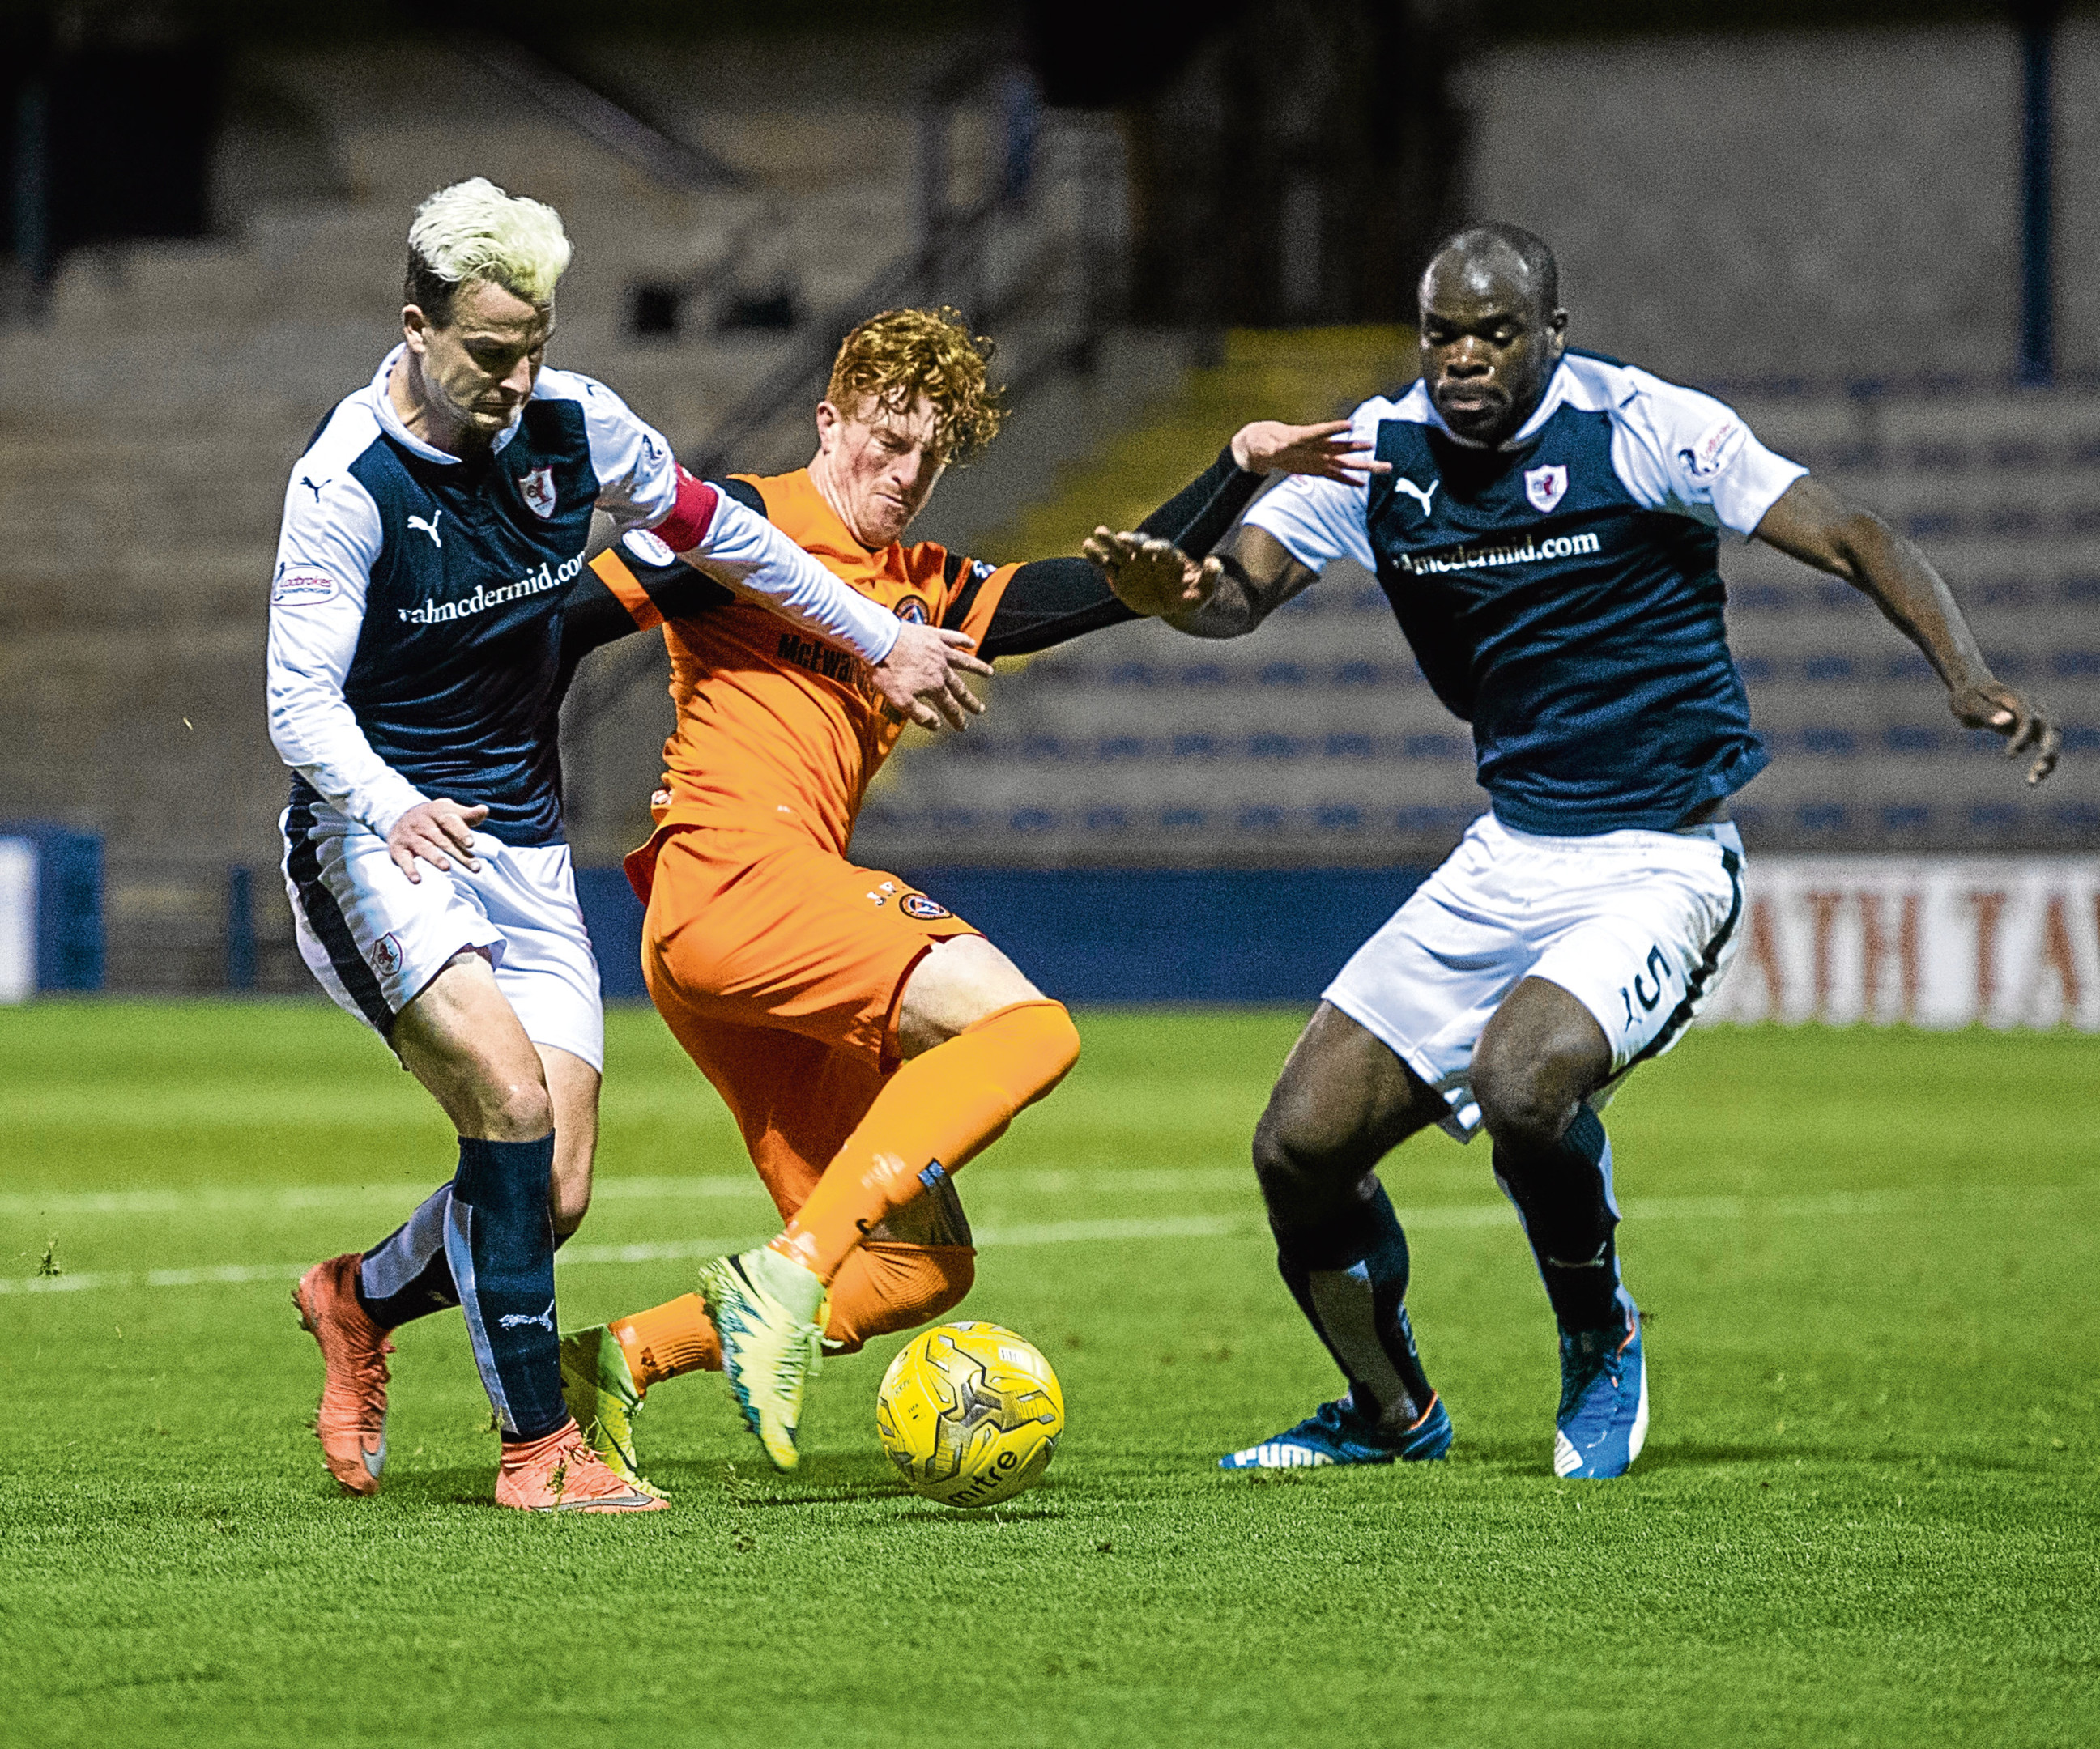 Dundee United travel to Stark's Park tomorrow